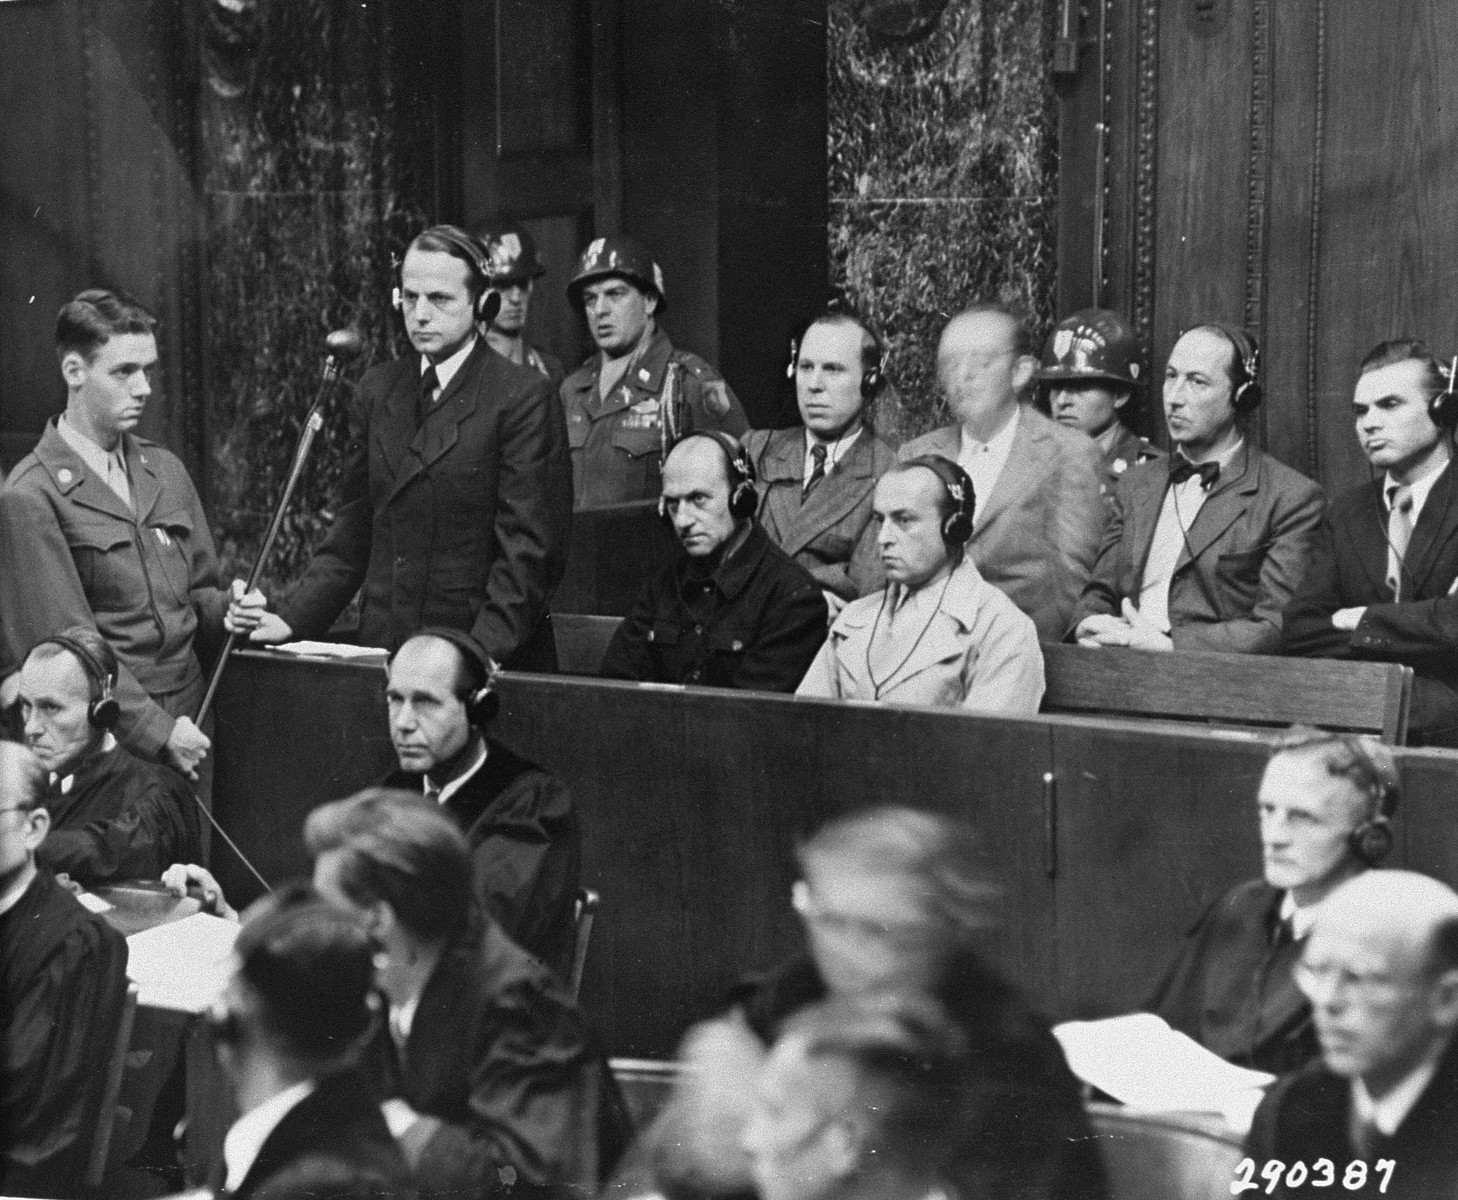 """Defendant Otto Ohlendorf pleads """"not guilty"""" during his arraignment at the Einsatzgruppen Trial."""